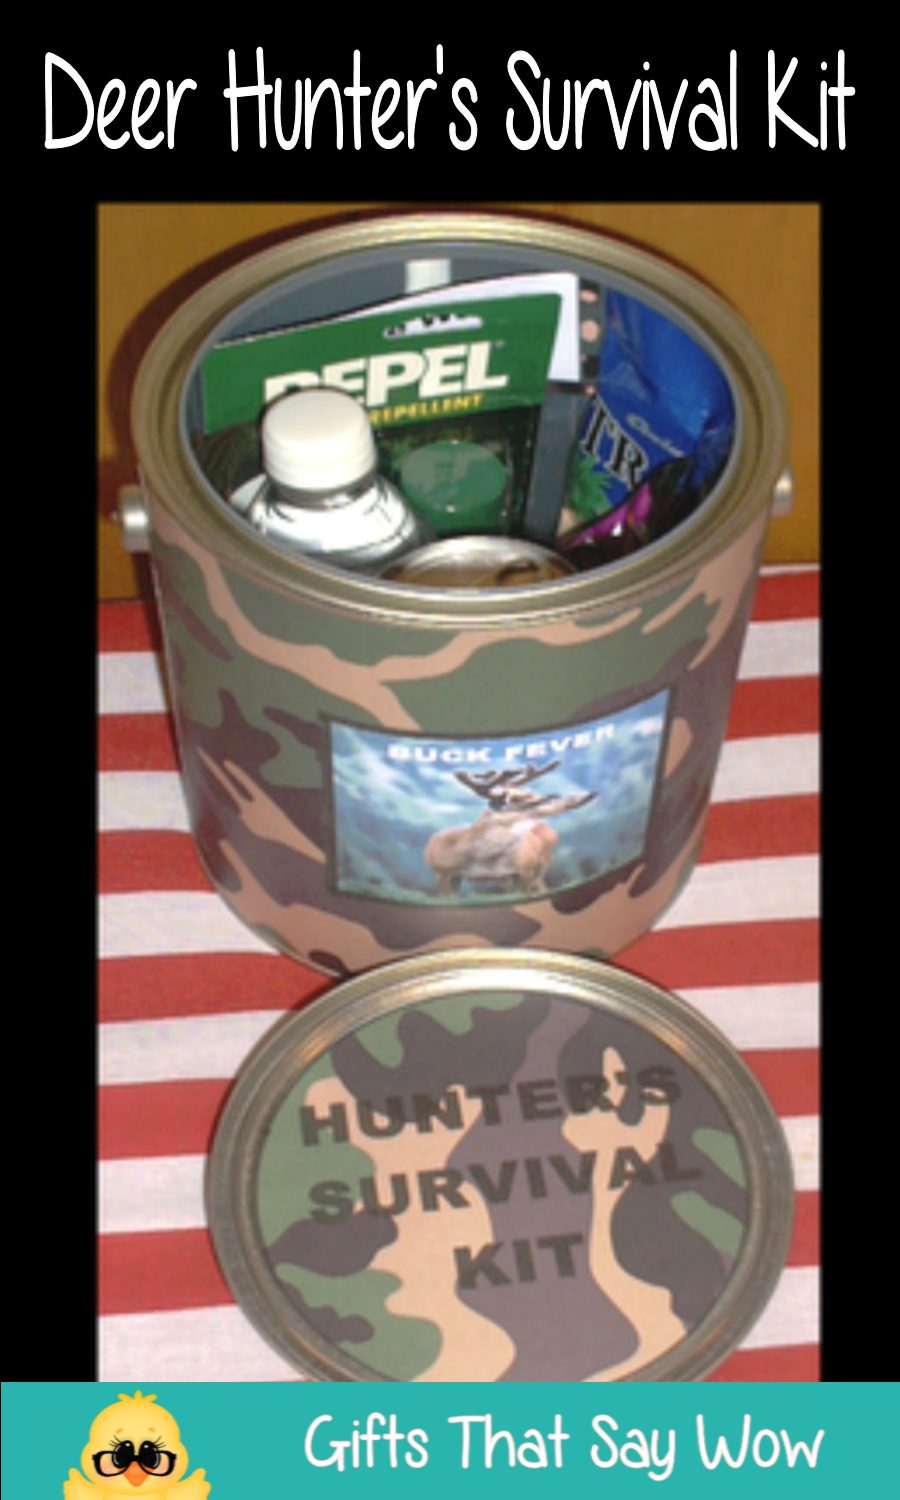 Gifts That Say Wow Fun Crafts And Gift Ideas Hunter S Survival